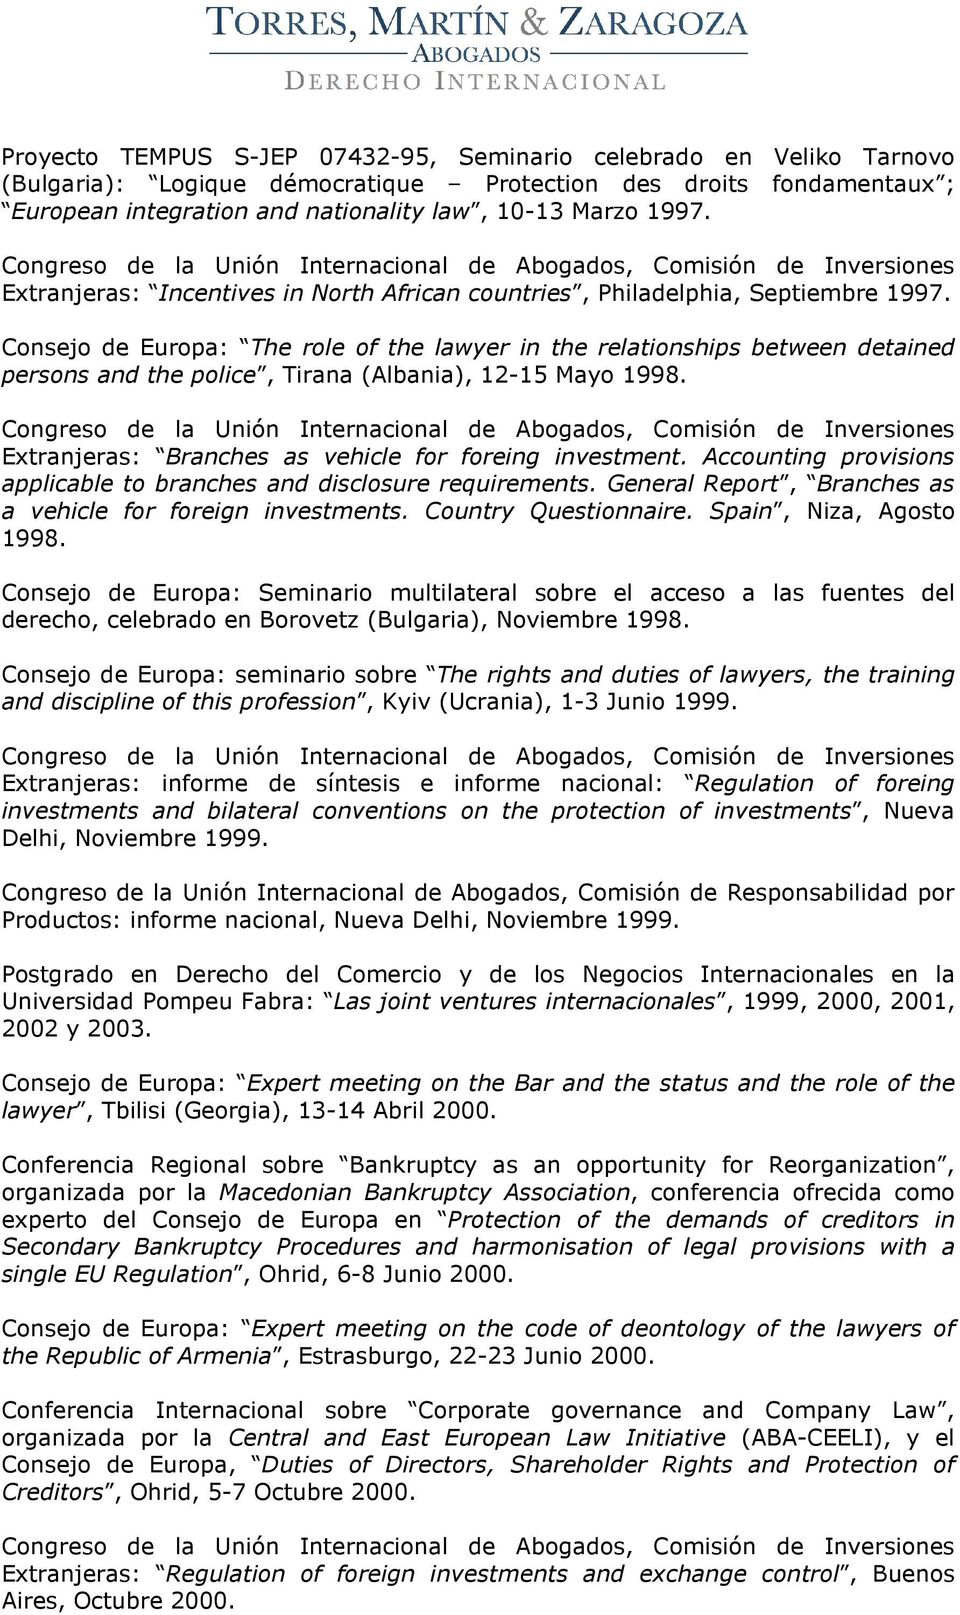 Consejo de Europa: The role of the lawyer in the relationships between detained persons and the police, Tirana (Albania), 12-15 Mayo 1998. Extranjeras: Branches as vehicle for foreing investment.